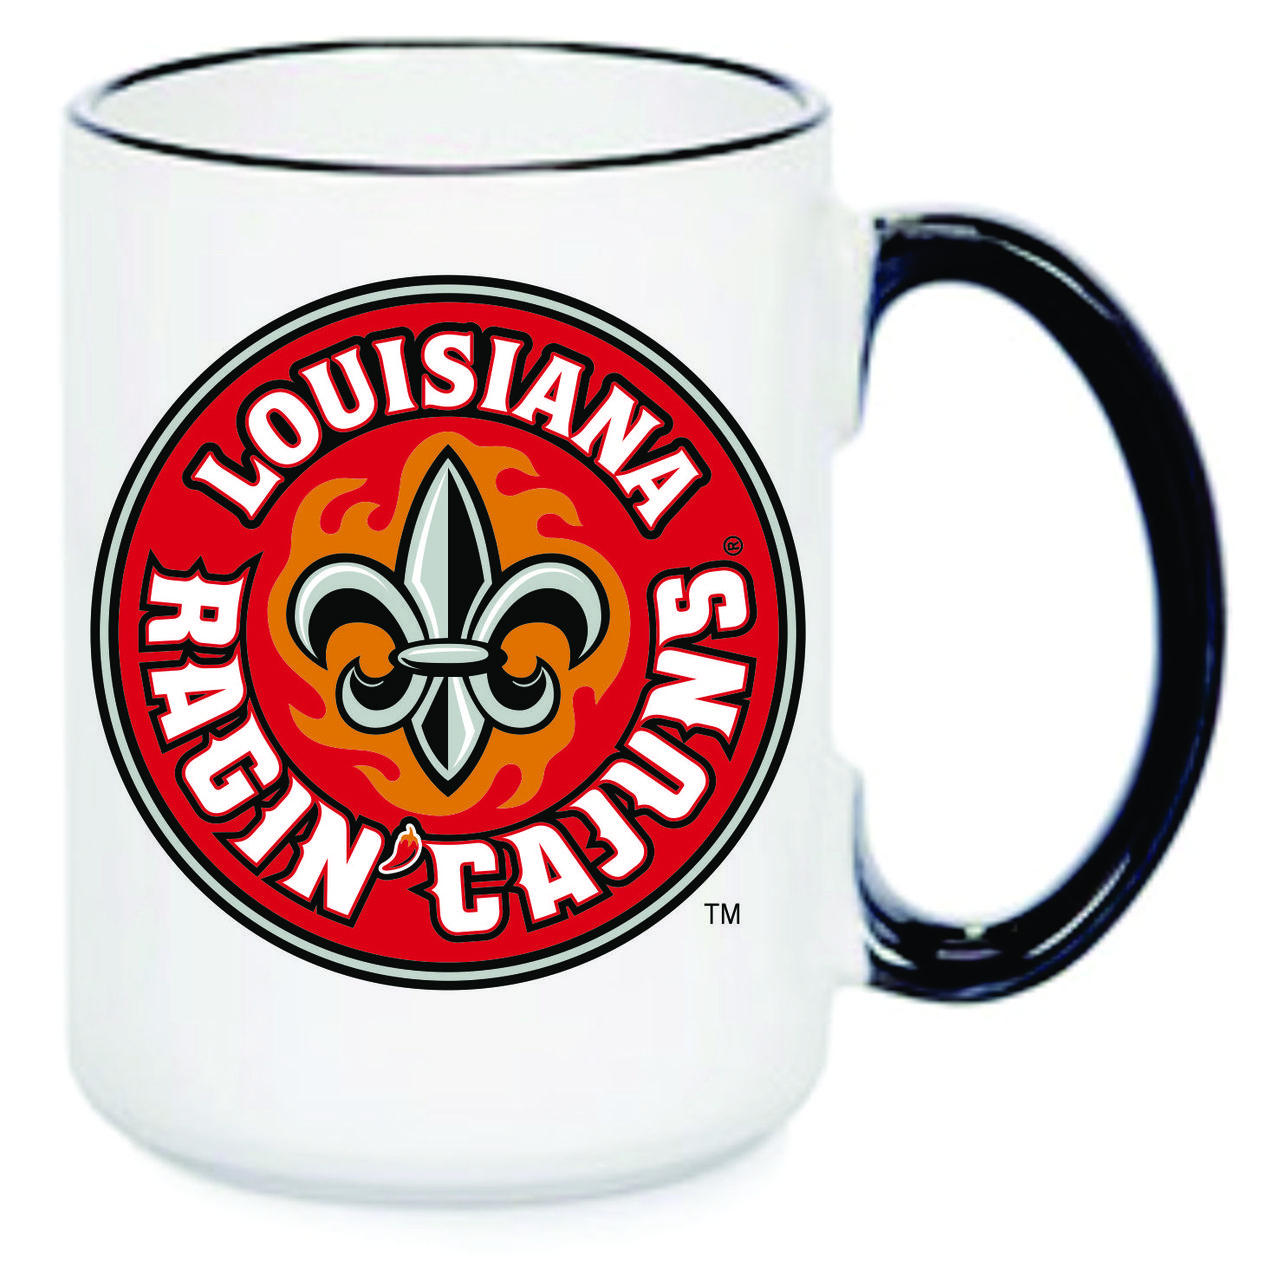 Louisiana Ragin' Cajuns Black & White Coffee Mug, 15oz.